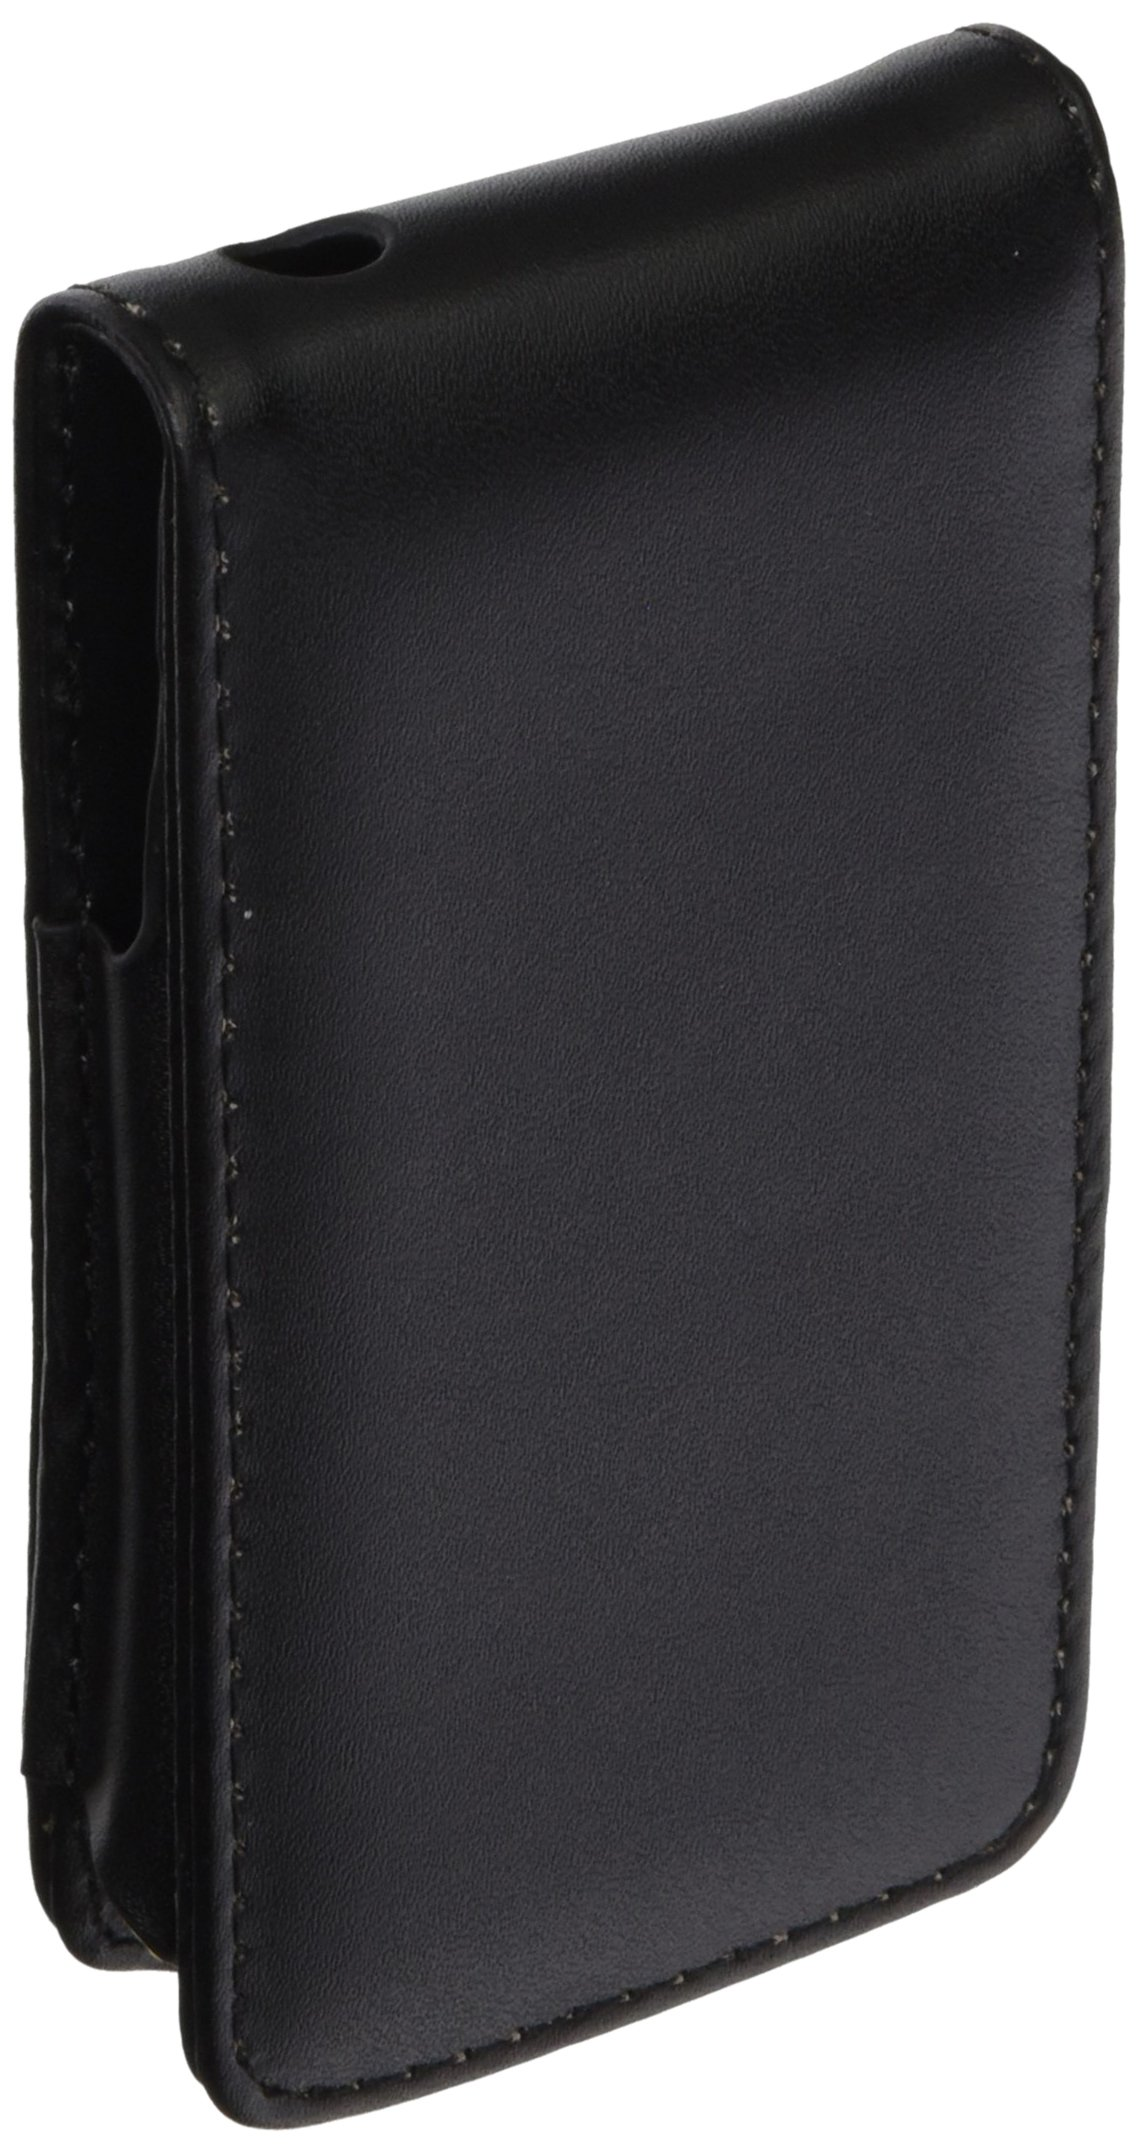 eForCityBlack Leather FLIP CASE Pouch Cover Compatible with iPhone4 4G 4TH iPhone4S - AT&T, Sprint, Version 16GB 32GB 64GB